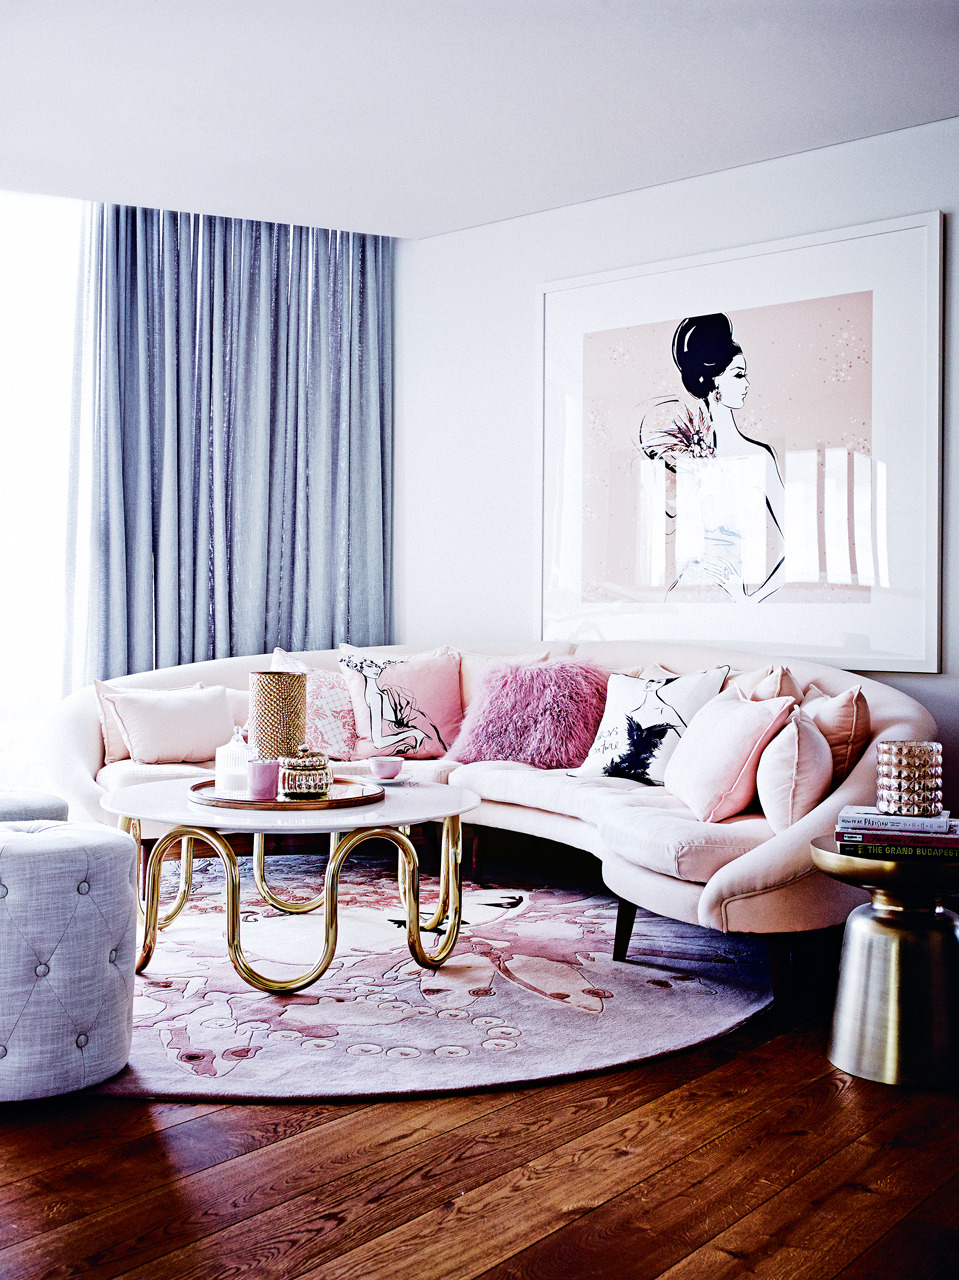 House tour: a fantastically fashionable apartment by illustrator Megan Hess - Vogue Living